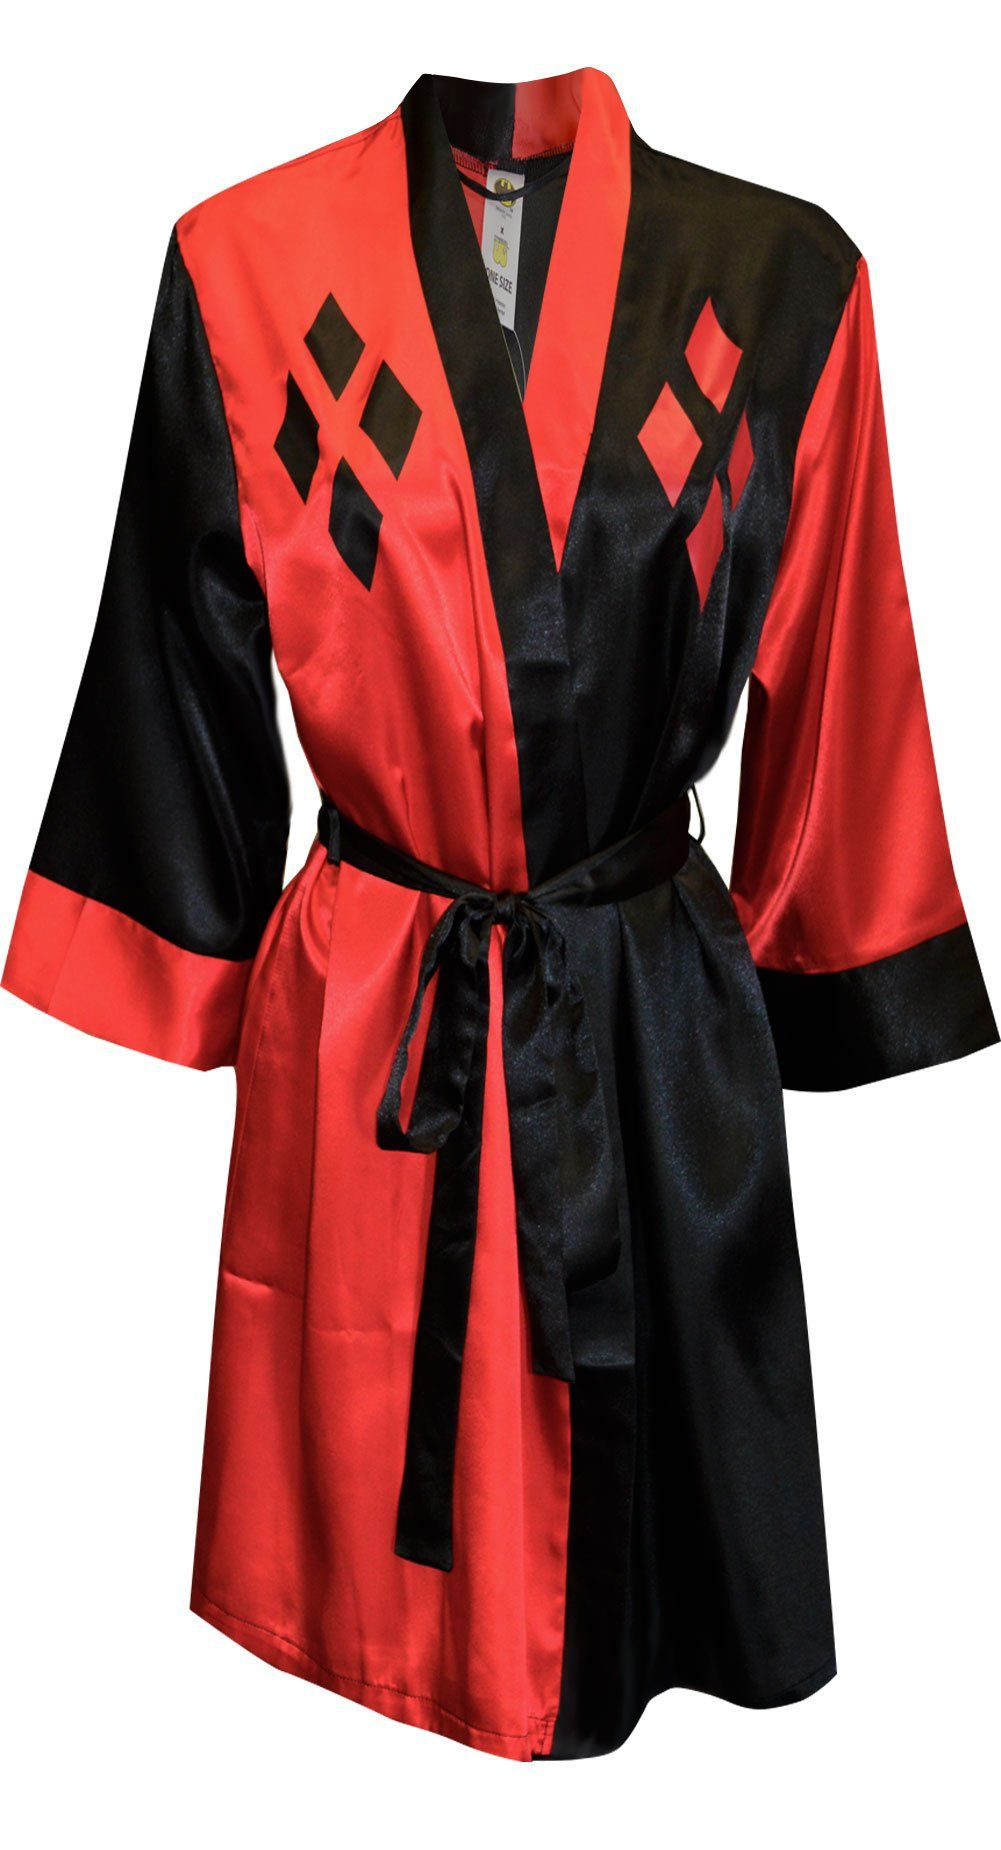 Dc Comics Harley Quinn Satin Robe for women (One Size)